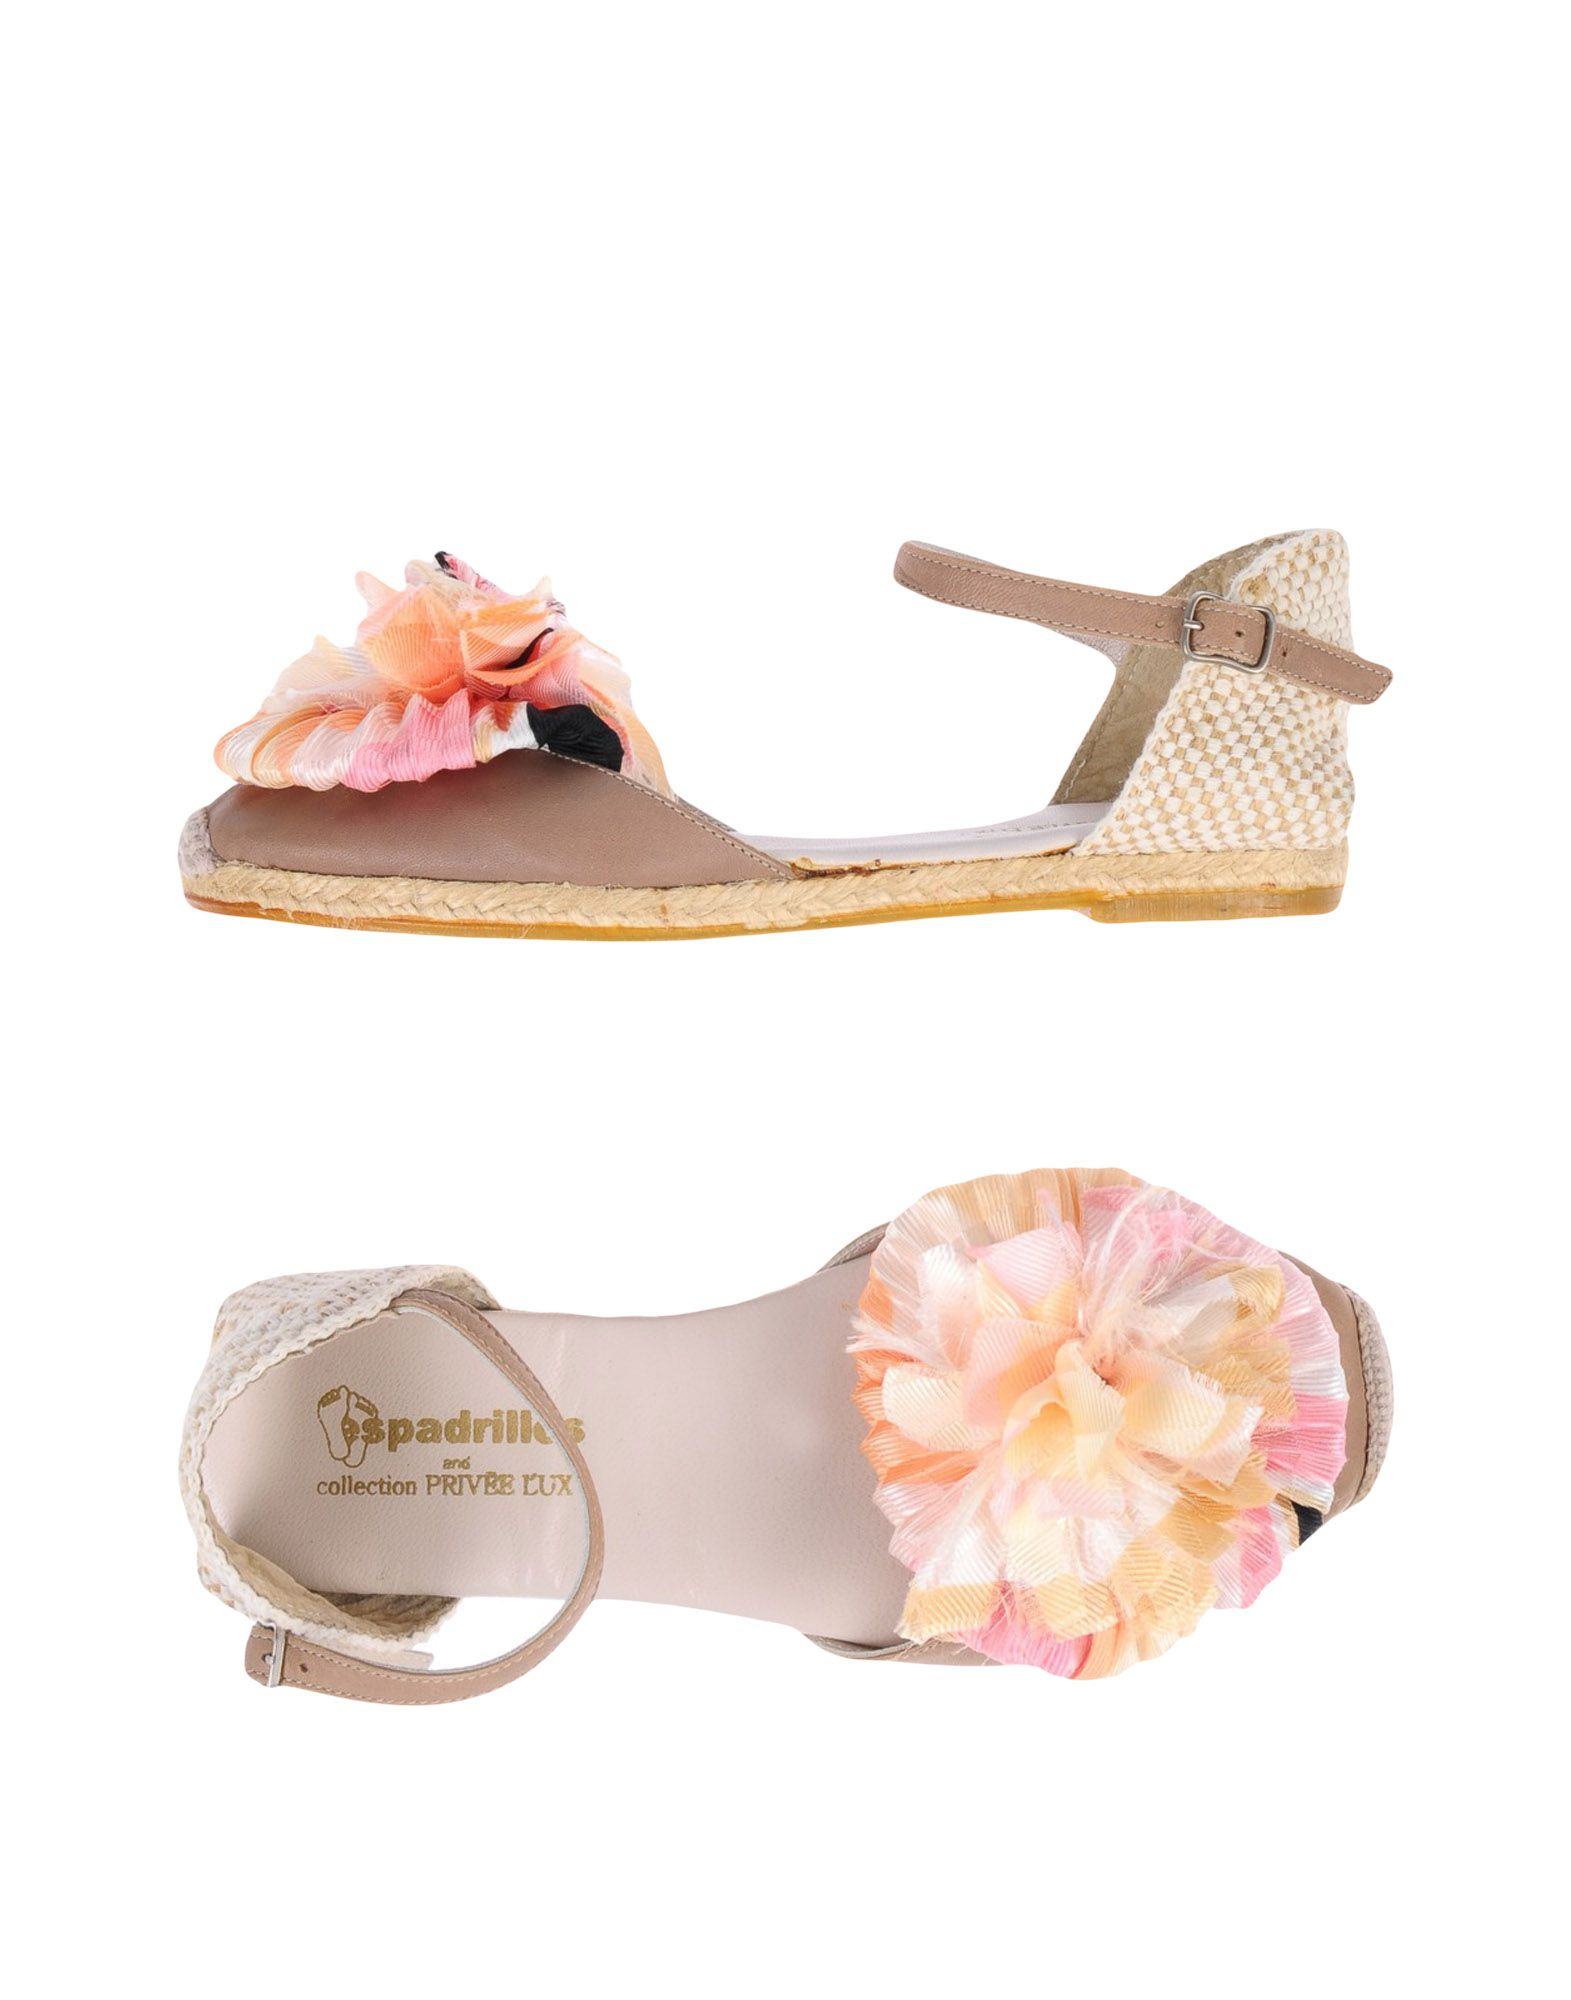 Sandales Espadrilles And Collection Privēe Lux? Femme - Sandales Espadrilles And Collection Privēe Lux? sur